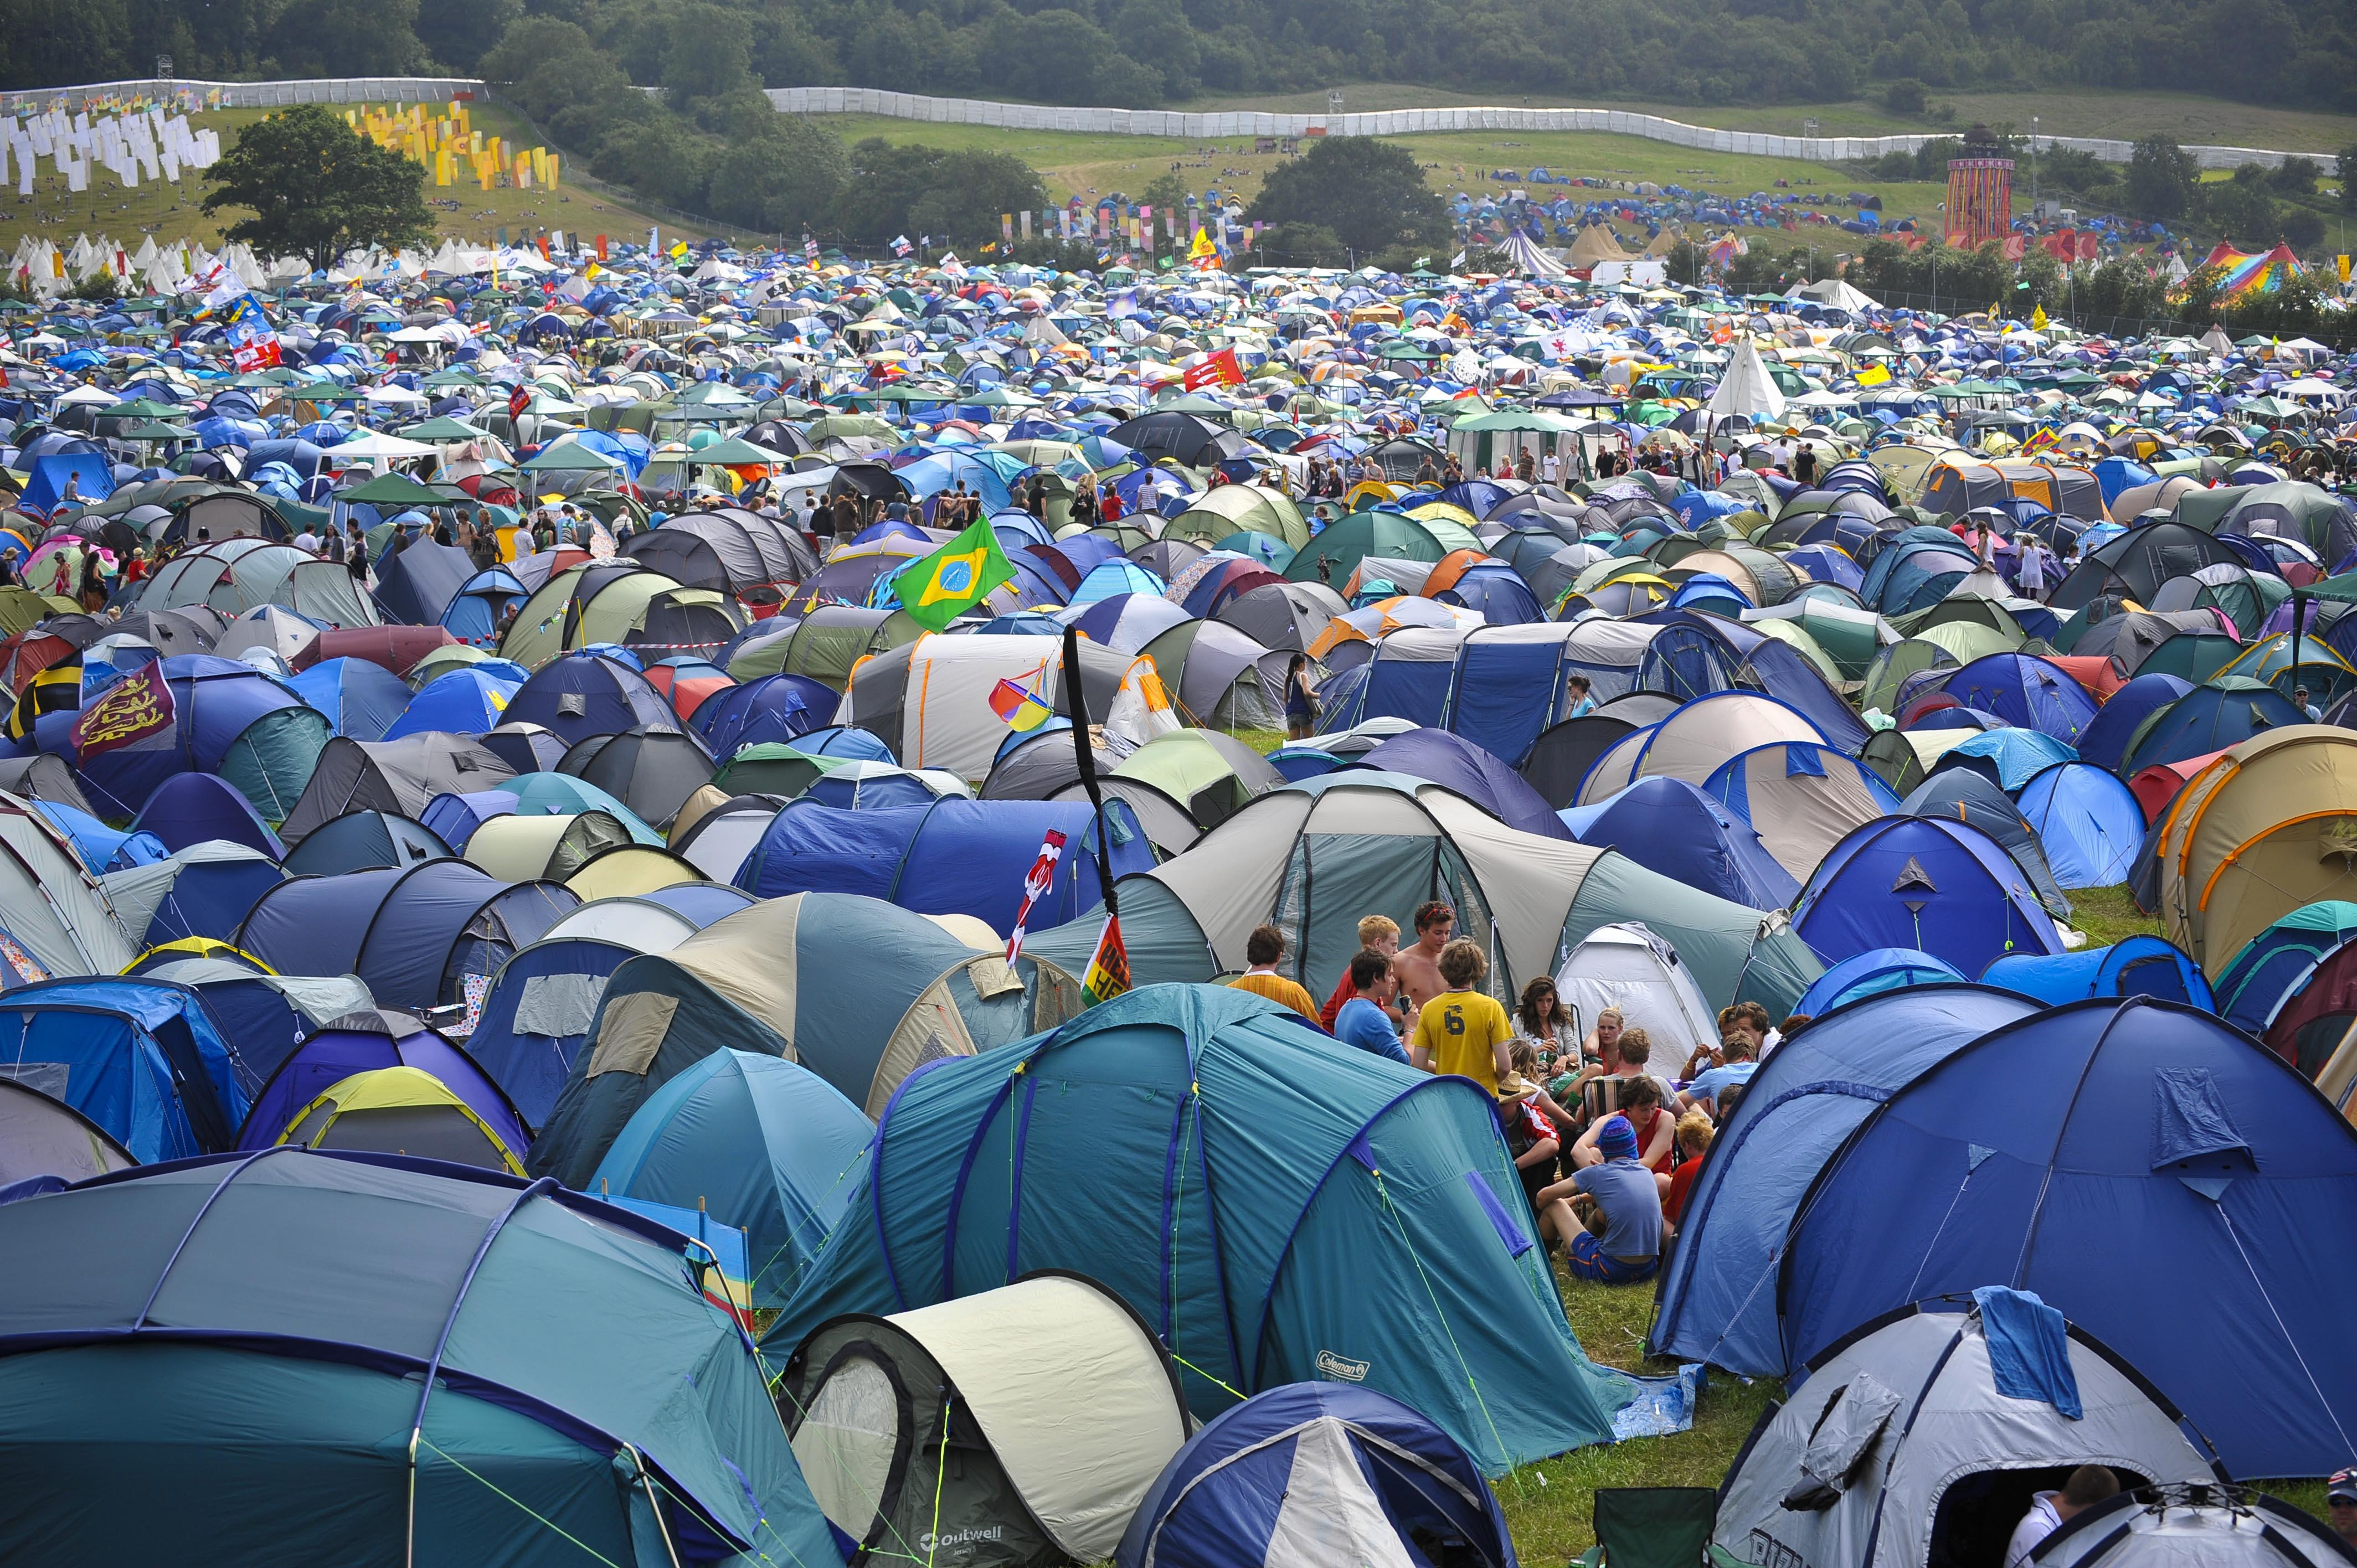 How To Get From Car To Campsite Glastonbury Festival